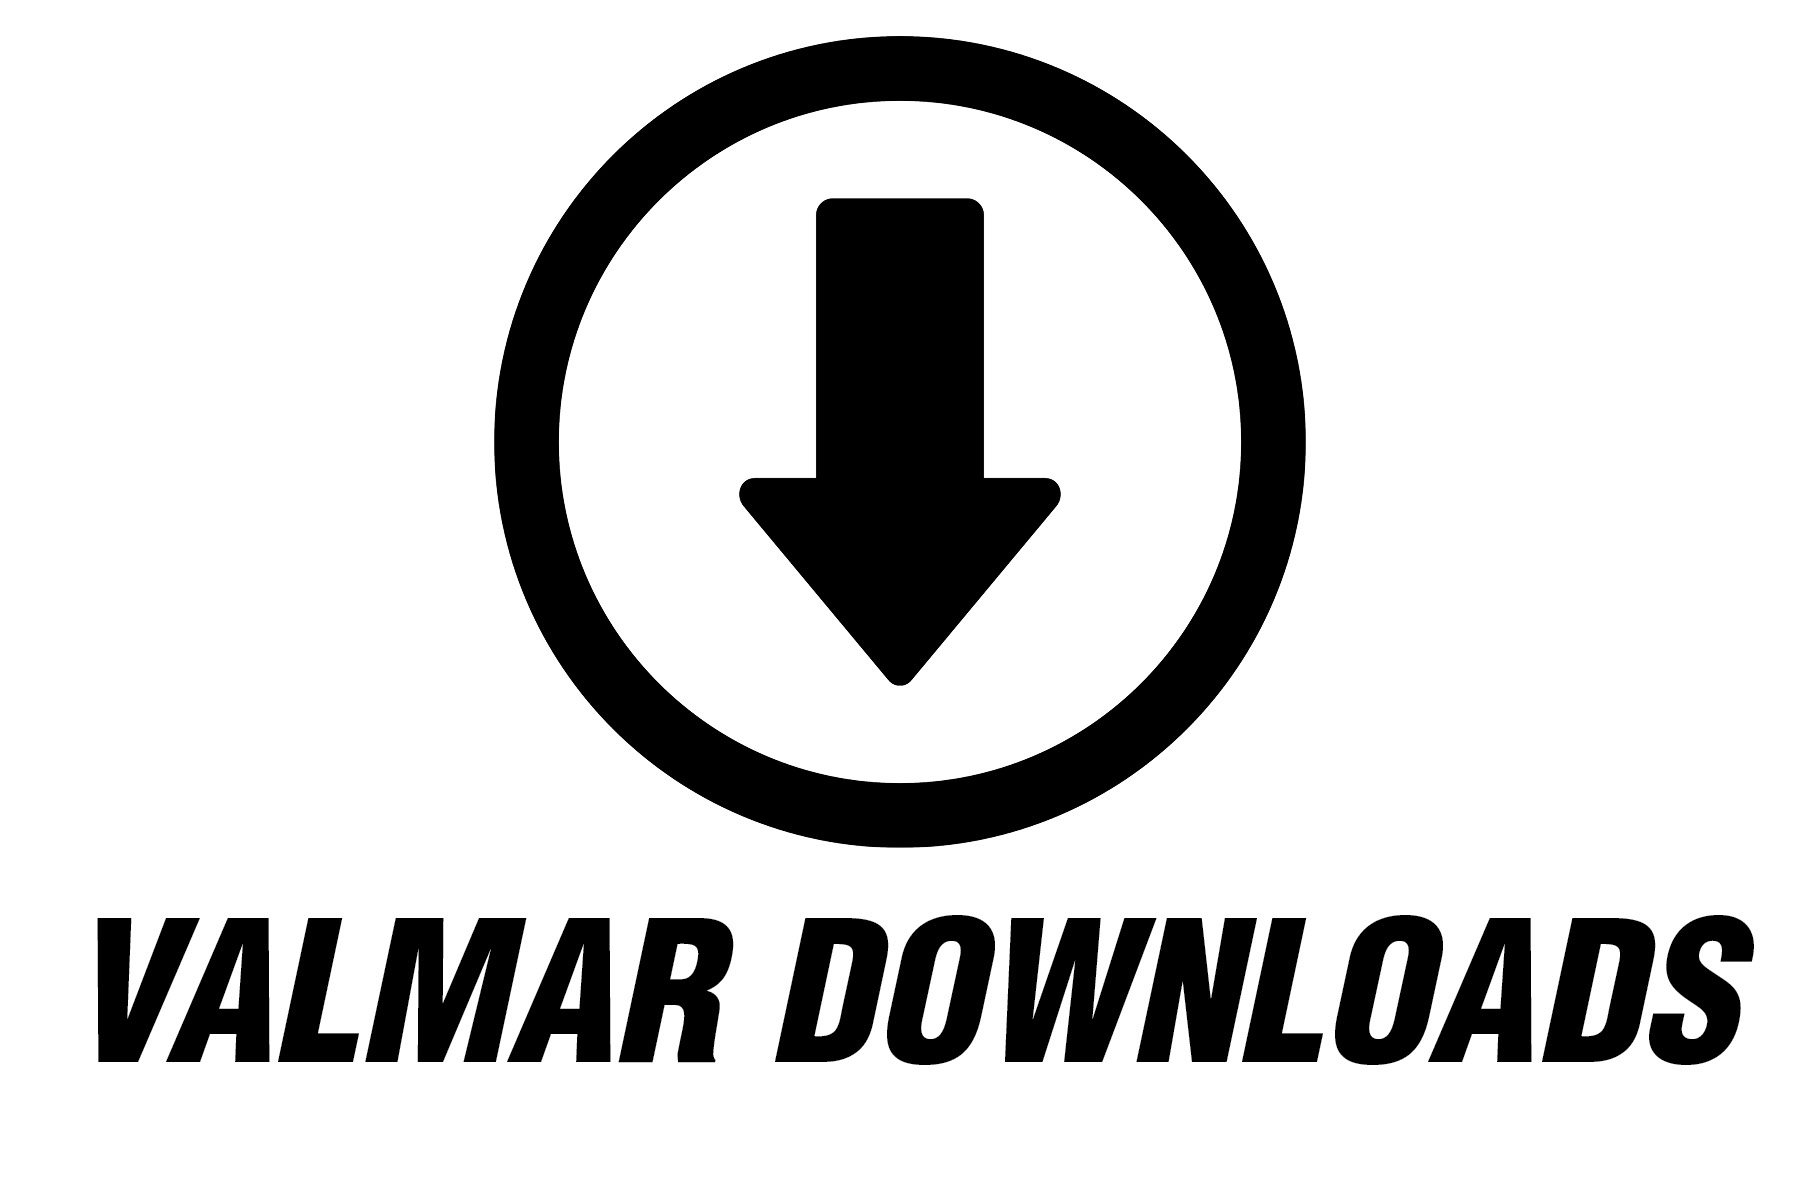 VALMAR DOWNLOADS.jpg